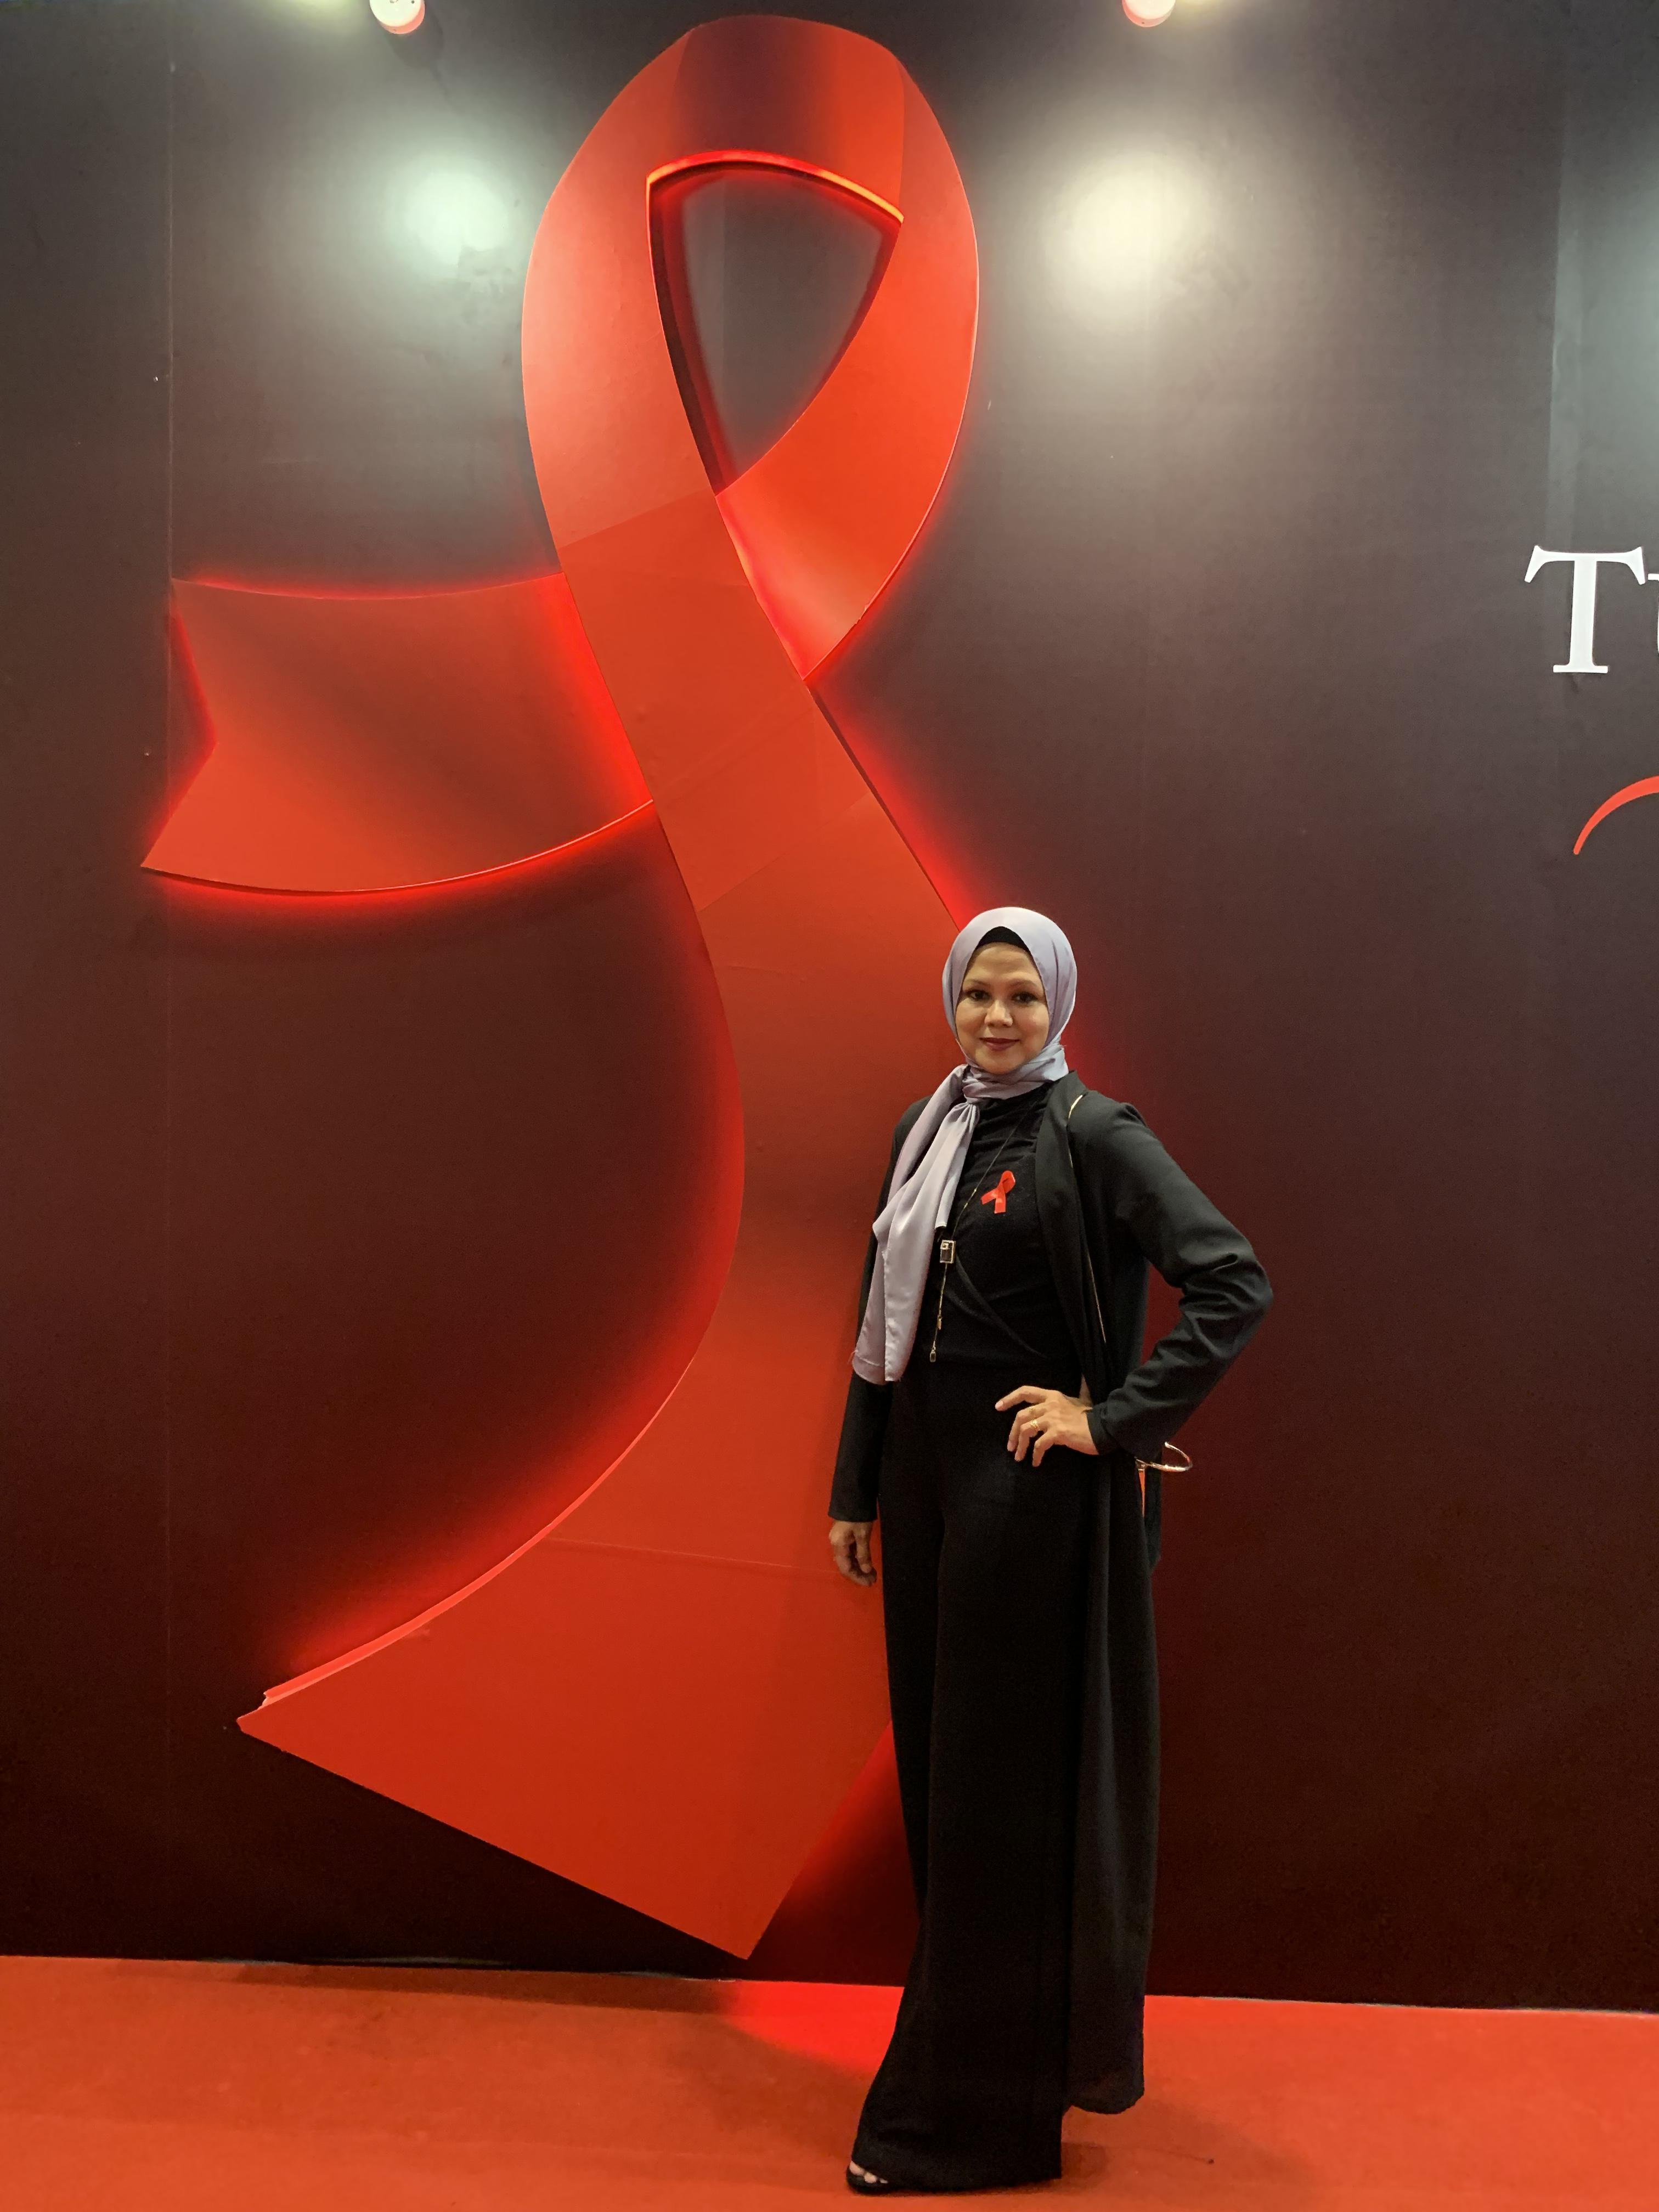 Image from Malaysian AIDS Foundation